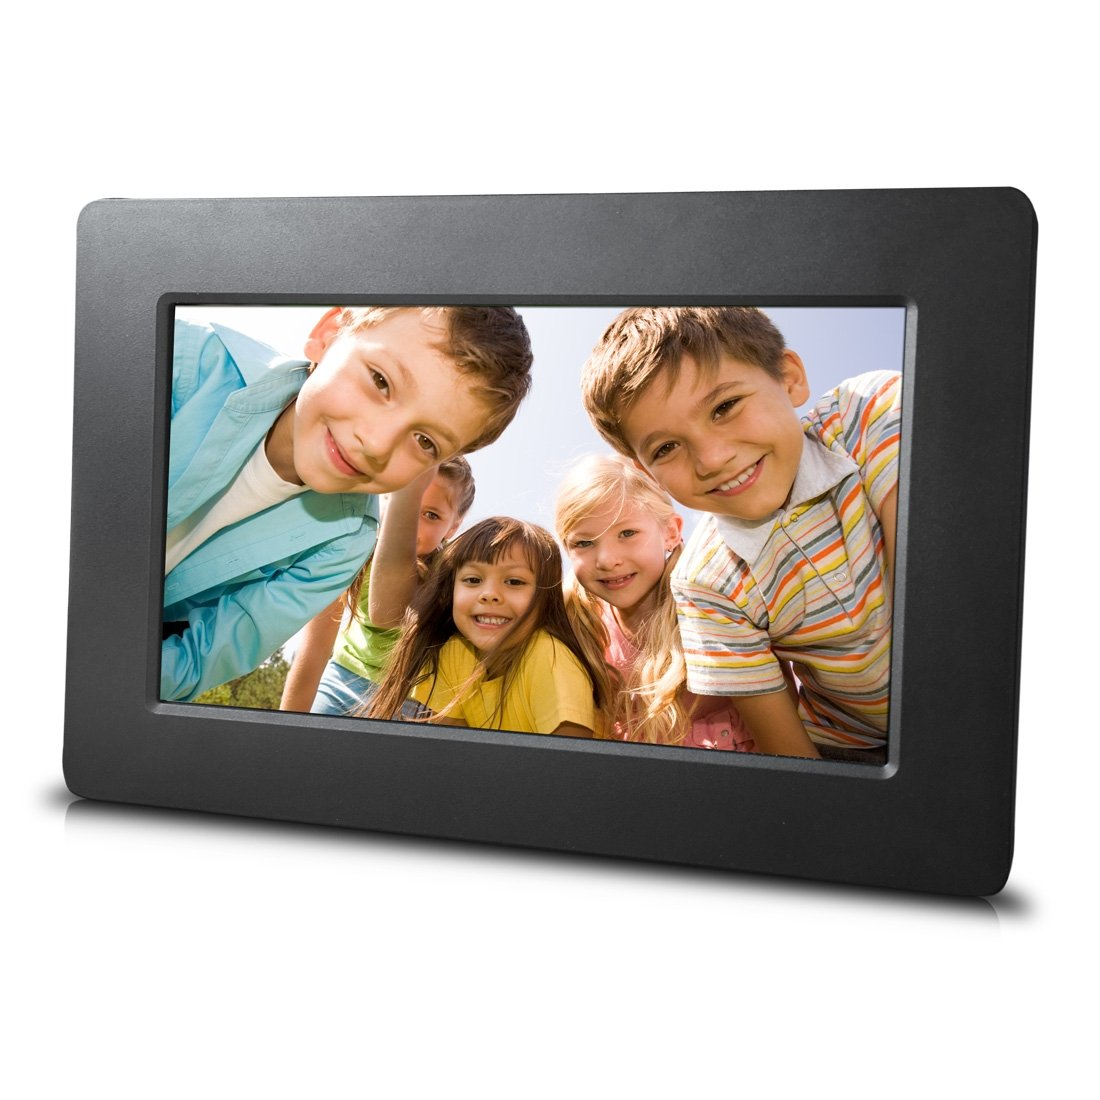 Sungale DPF710 7'' Digital Photo Frame with Ultra Slim Design by Sungale